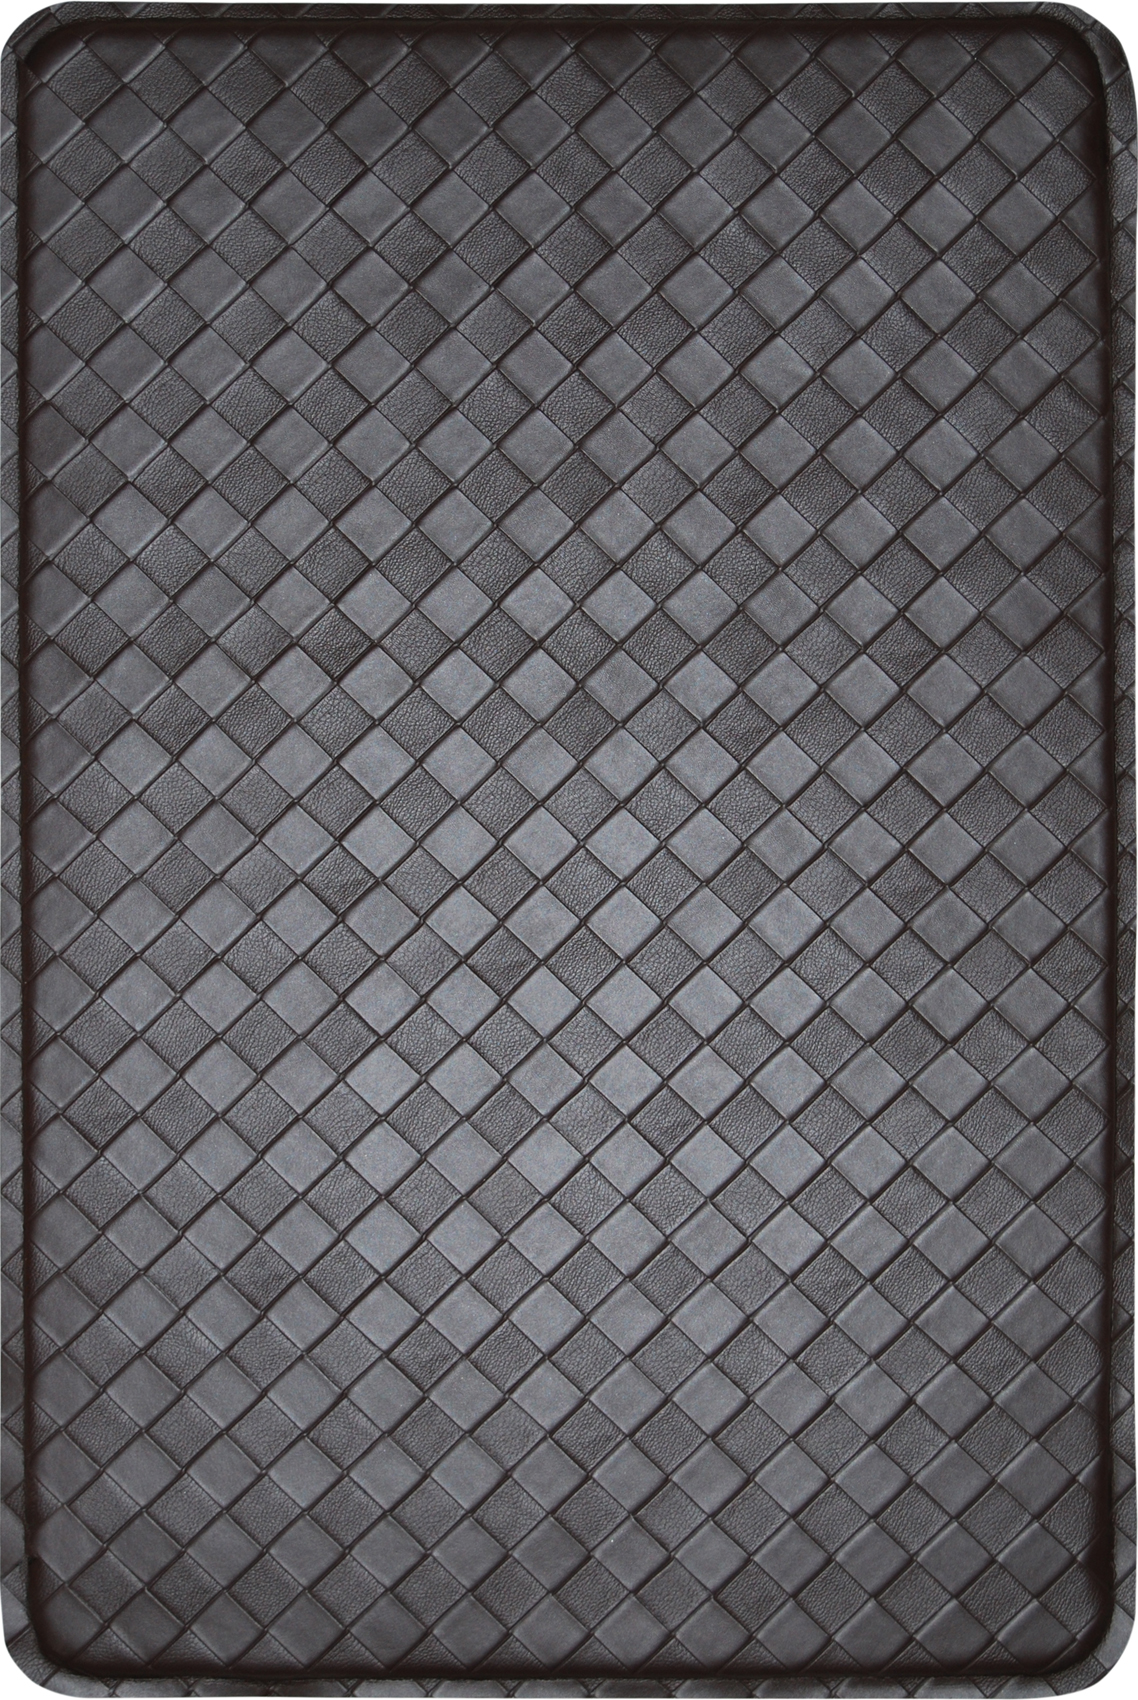 Contemporary-Indoor-Cushion-Kitchen-Rug-Anti-Fatigue-Floor-Mat-Actual-24-034-x-36-034